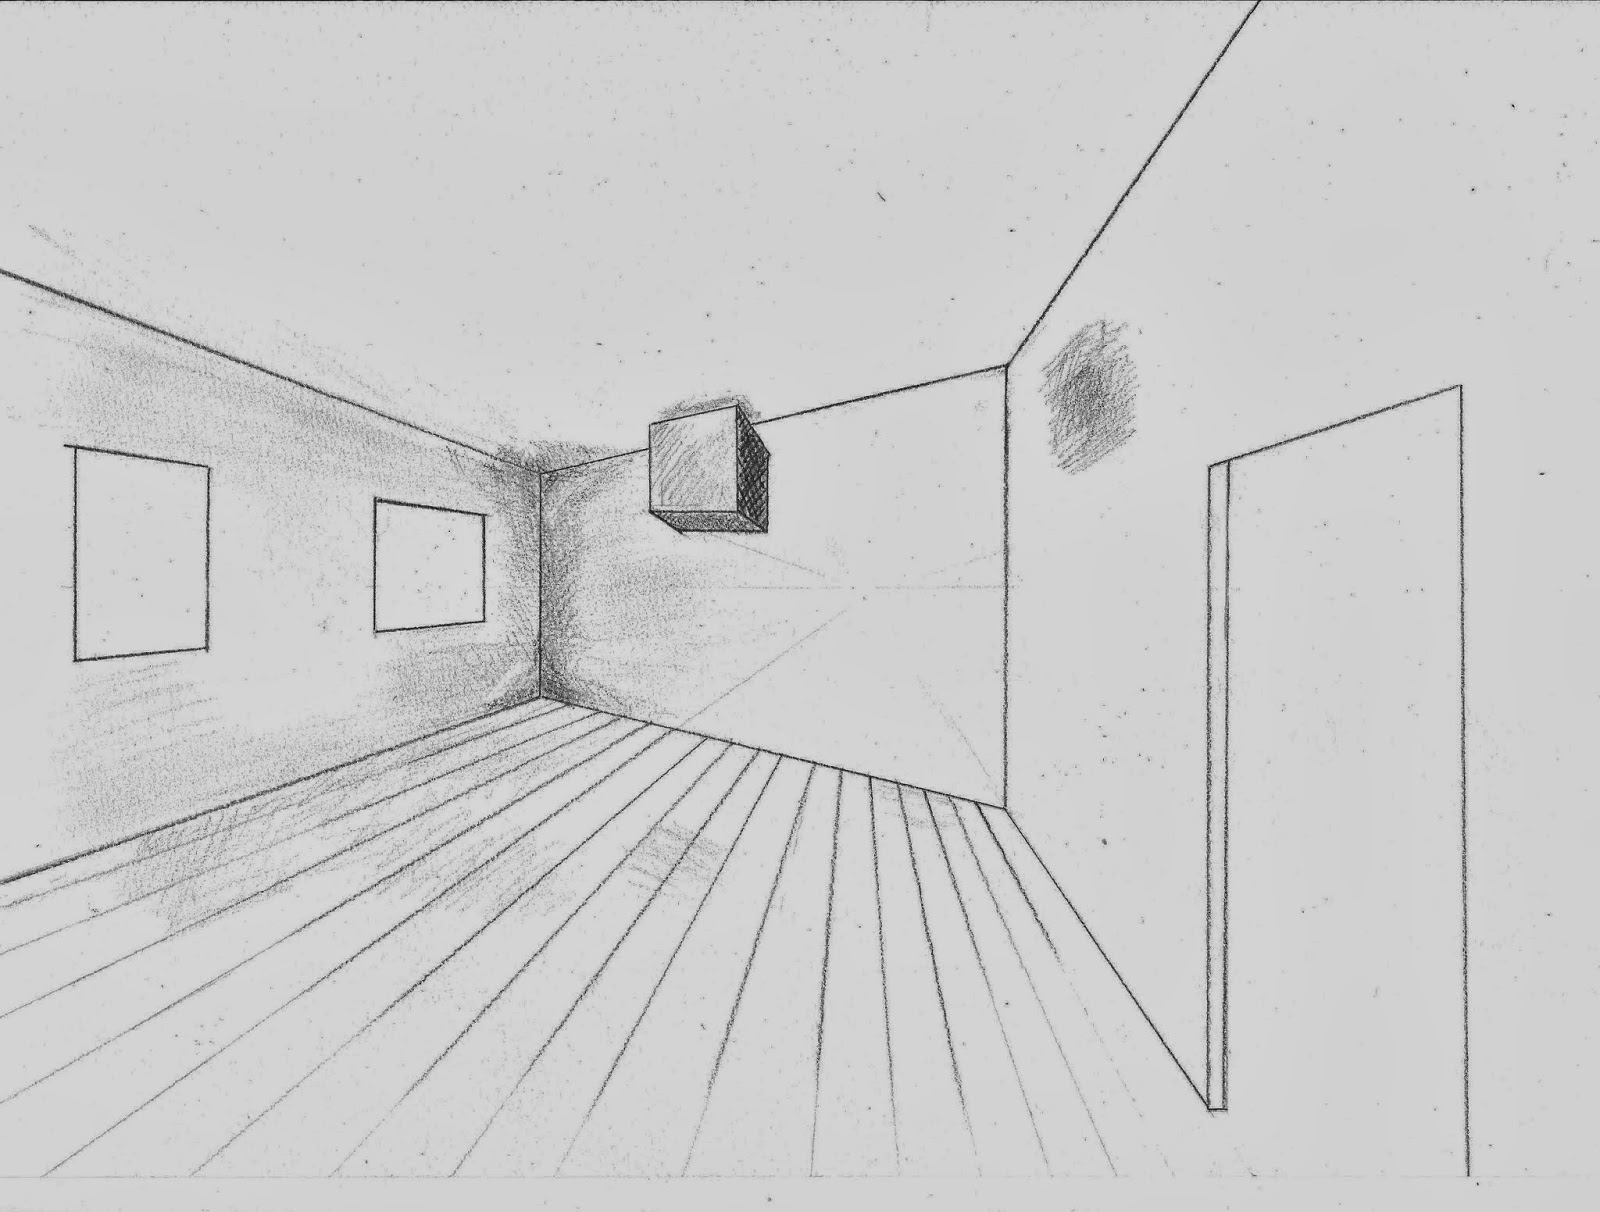 Modele Batiment En Perspective : Chez vapi dessins et illustrations initiation au dessin